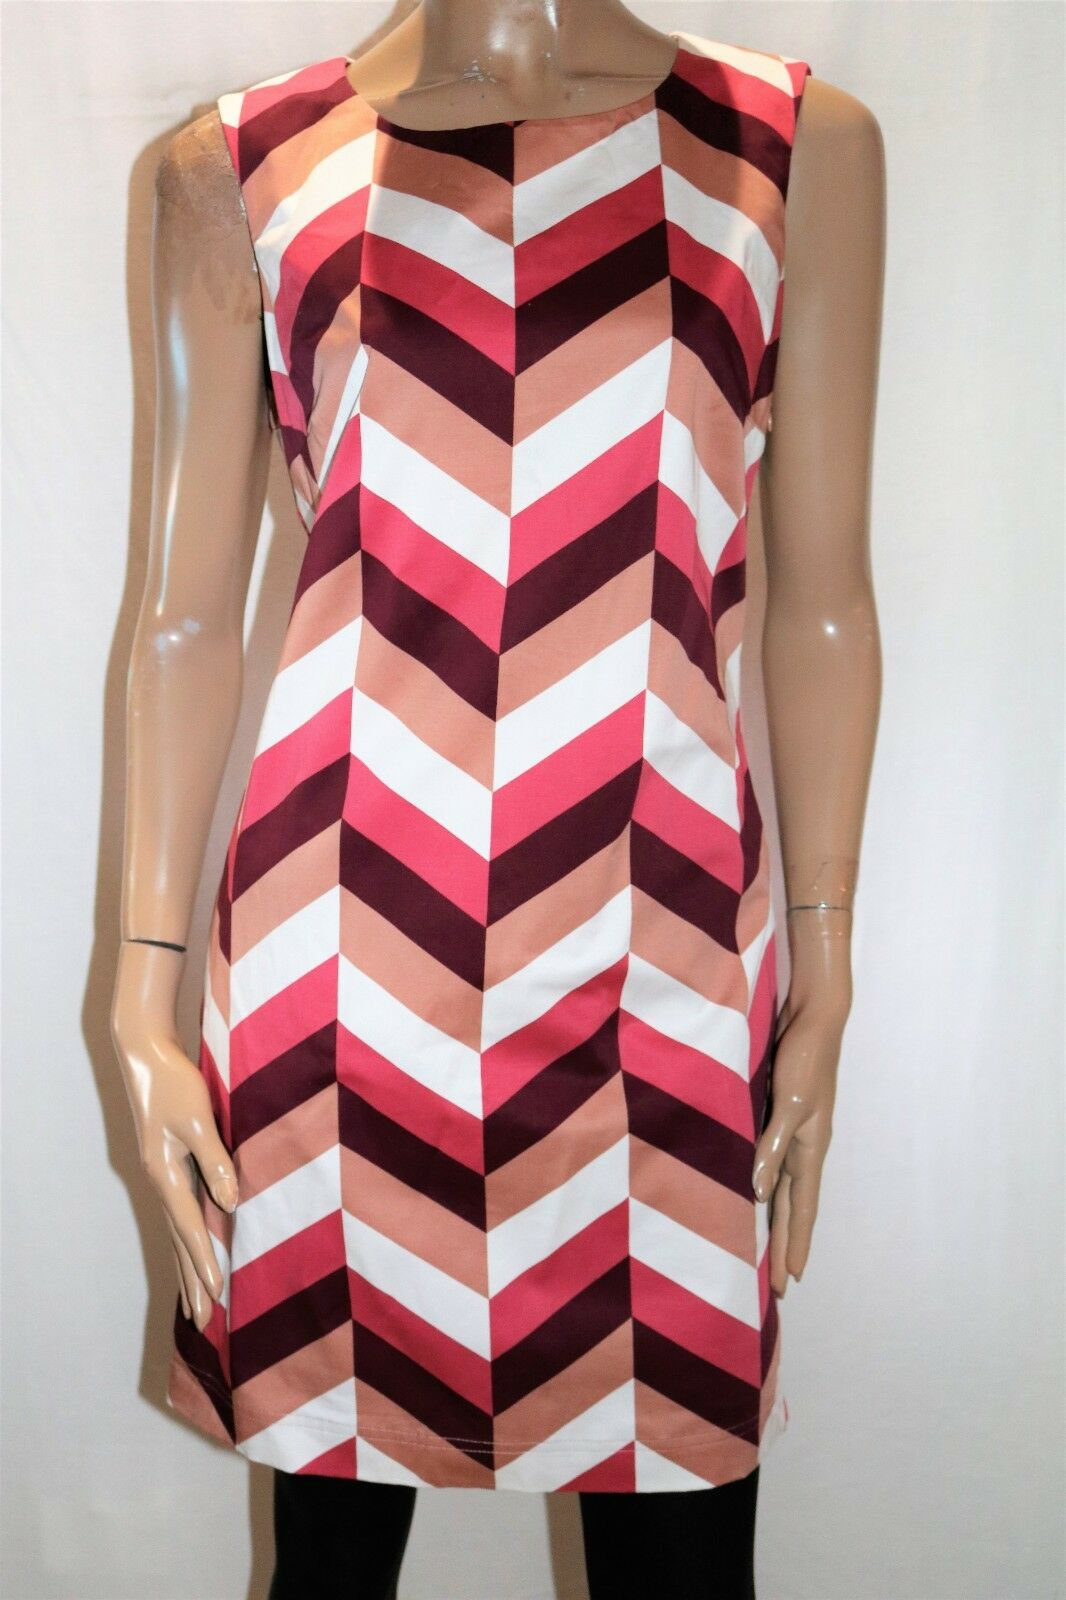 Edc Brand Multi Colours Sleeveless Day Dress Size L BNWT  TT76